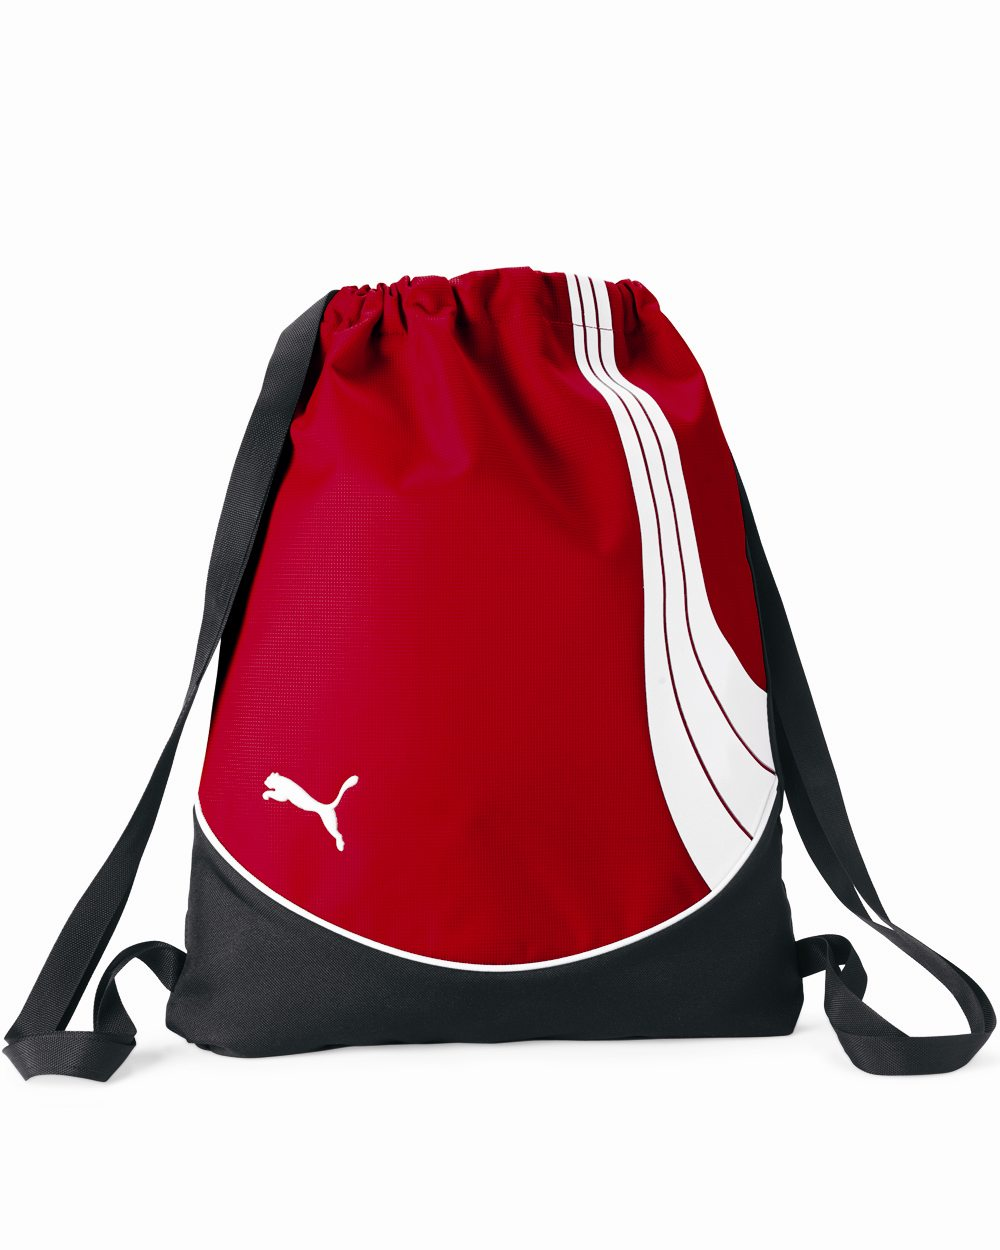 PUMA 1006 - Teamsport Formation Gym Sack